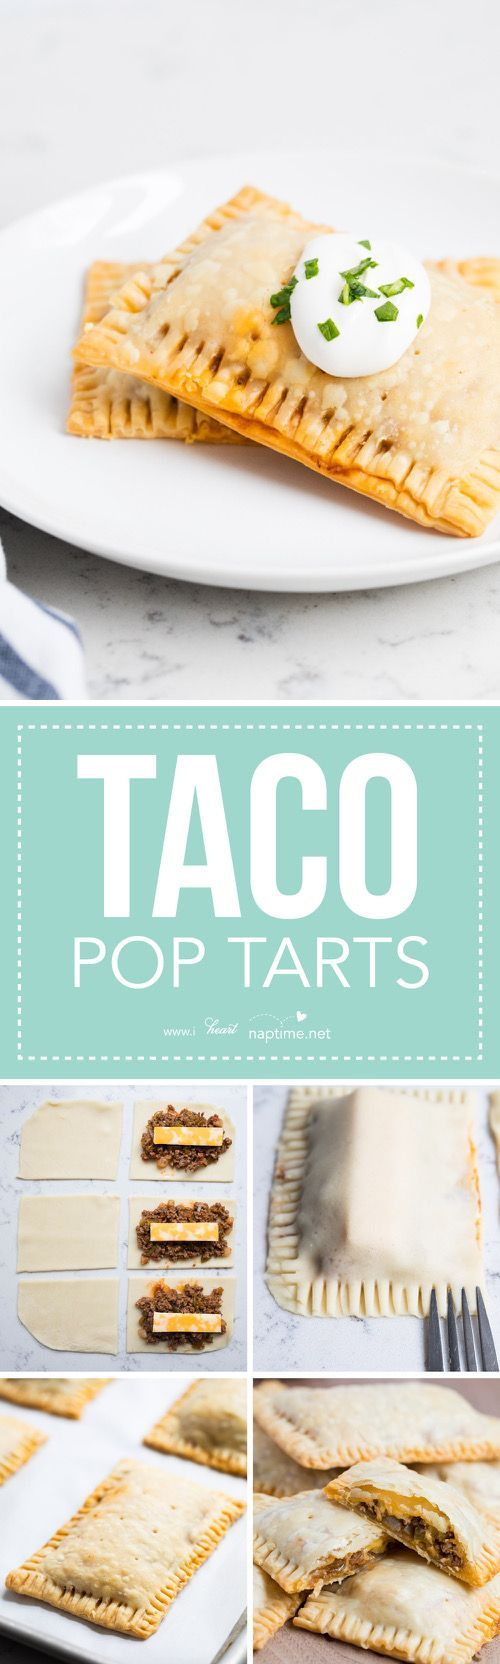 Taco Pop Tarts …AKA mini taco pies are one of my families favorite! The flaky crust, seasoned taco meat, colby-jack cheese and fresh salsa give these such amazing flavor!